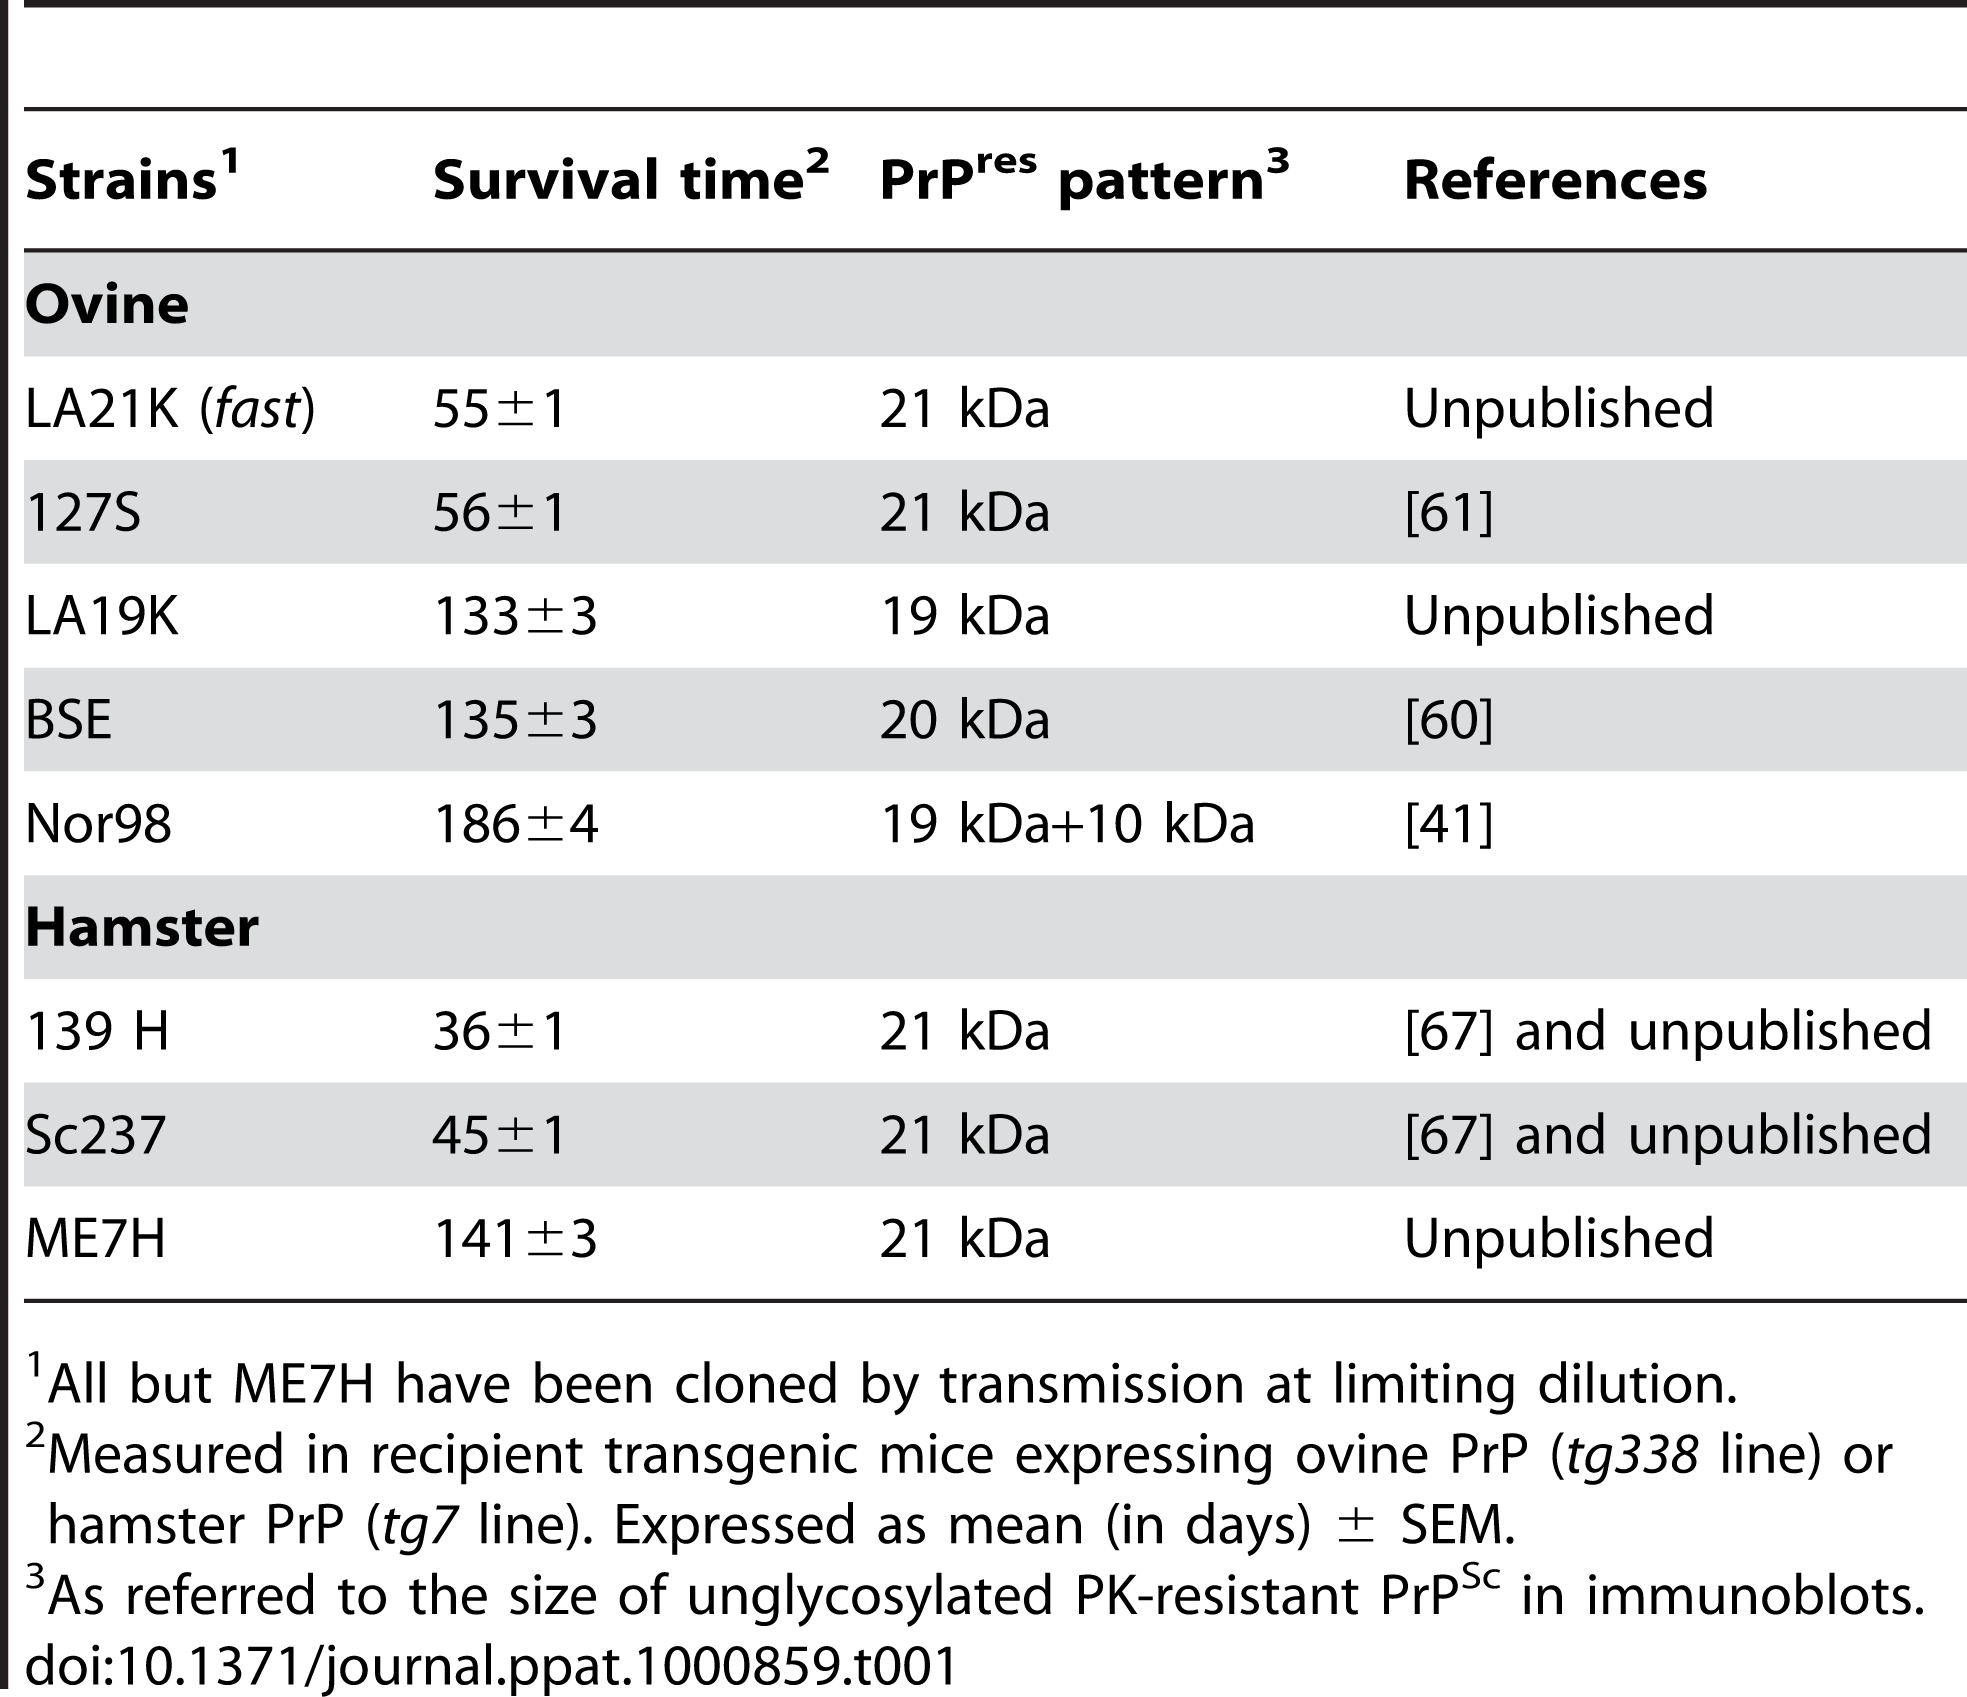 Phenotypic traits of the ovine and hamster prion strains used in the study.